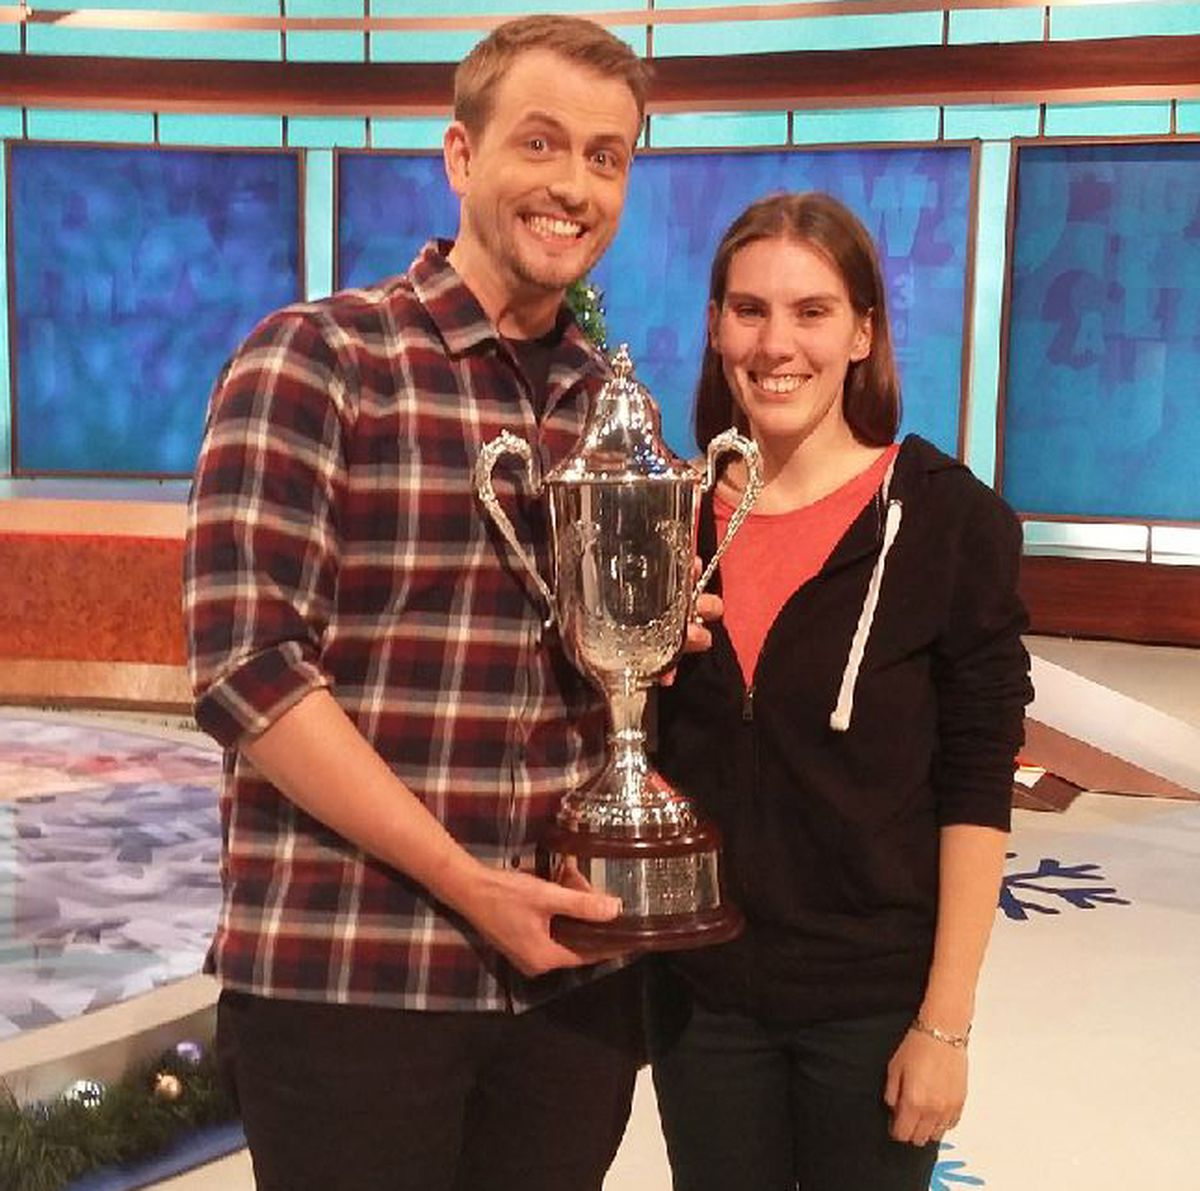 With the Richard Whiteley Memorial Trophy and wife Tamsyn